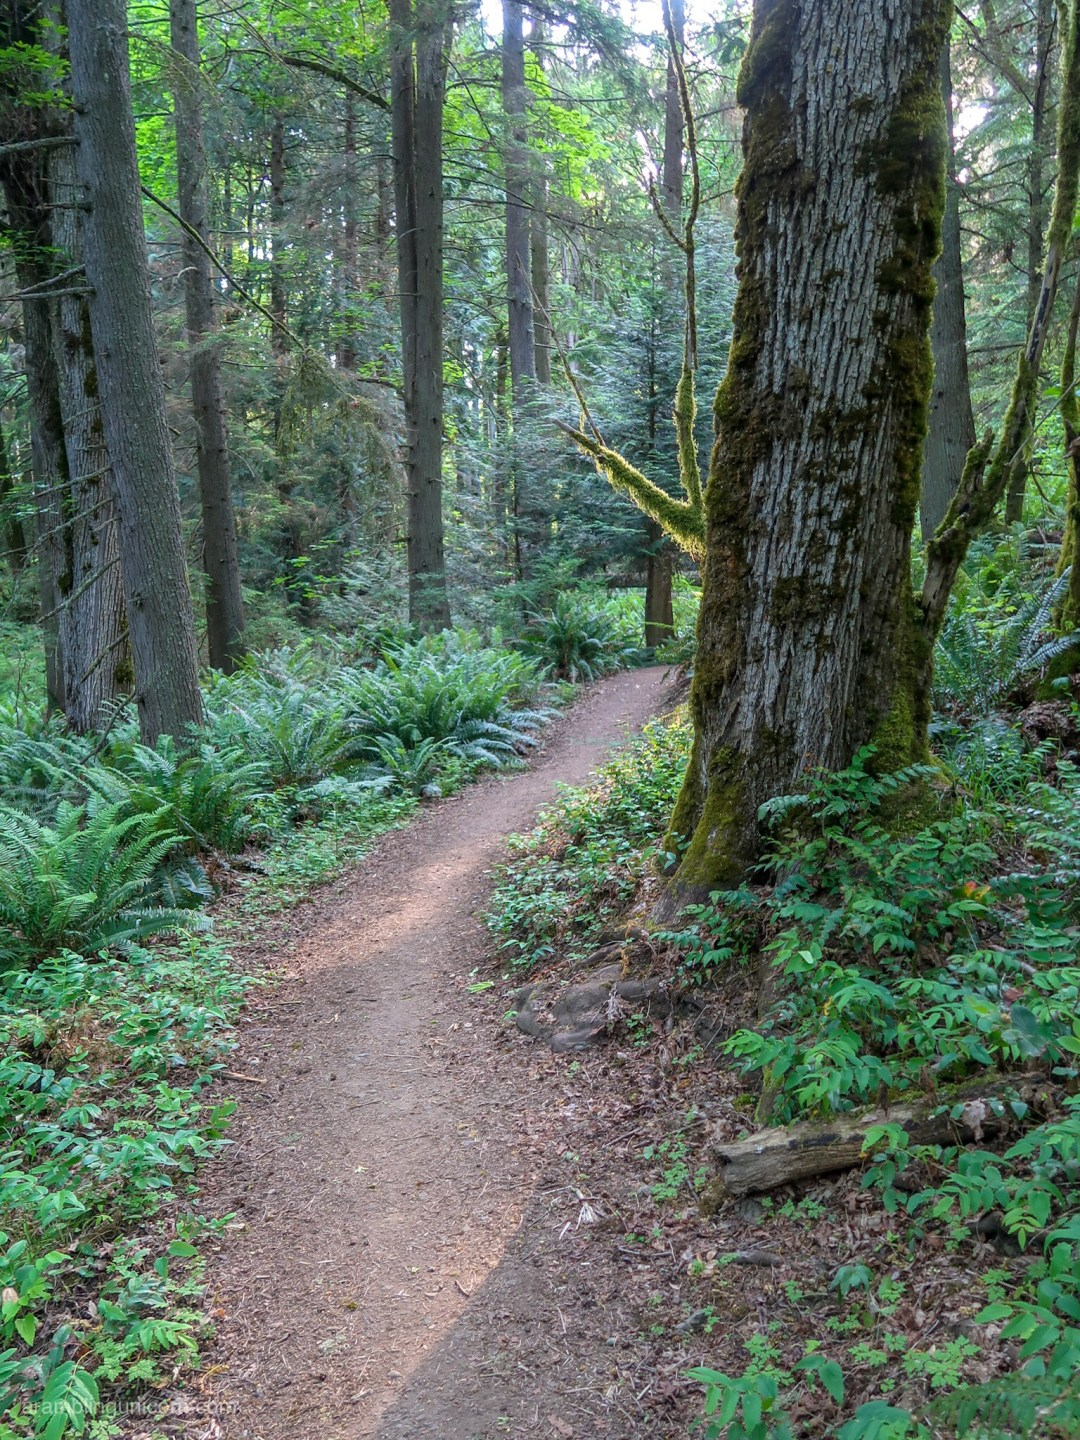 The Margaret's Way trail